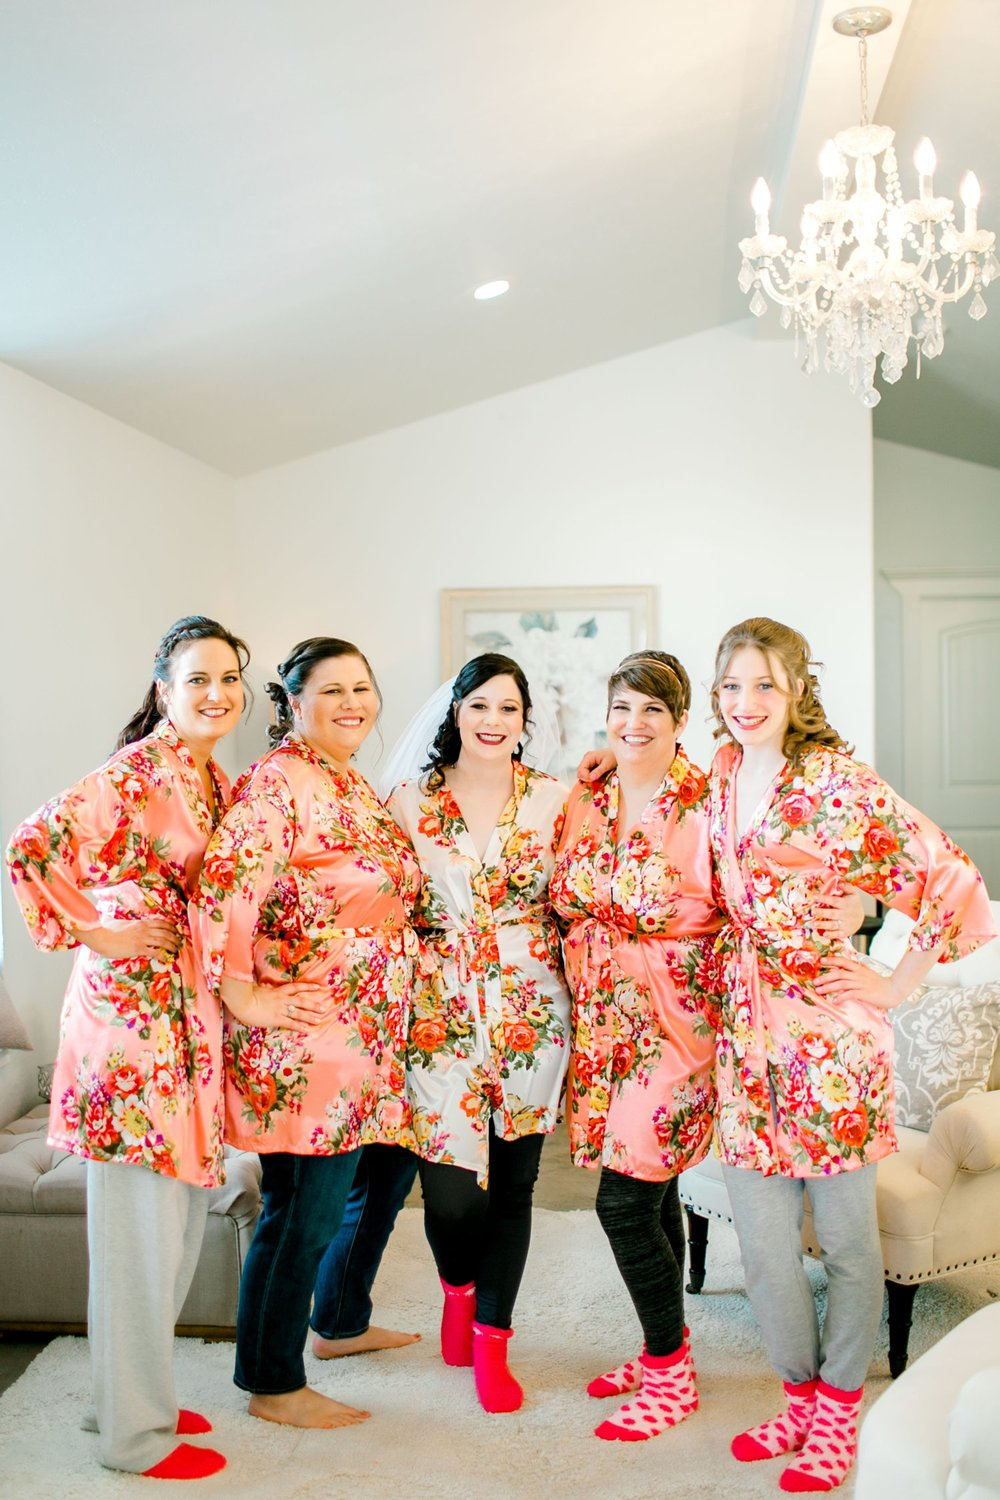 Autumn-Oaks-Events-Morgan-Andy-Lane-Wedding-Lubbock-Photography__0013.jpg